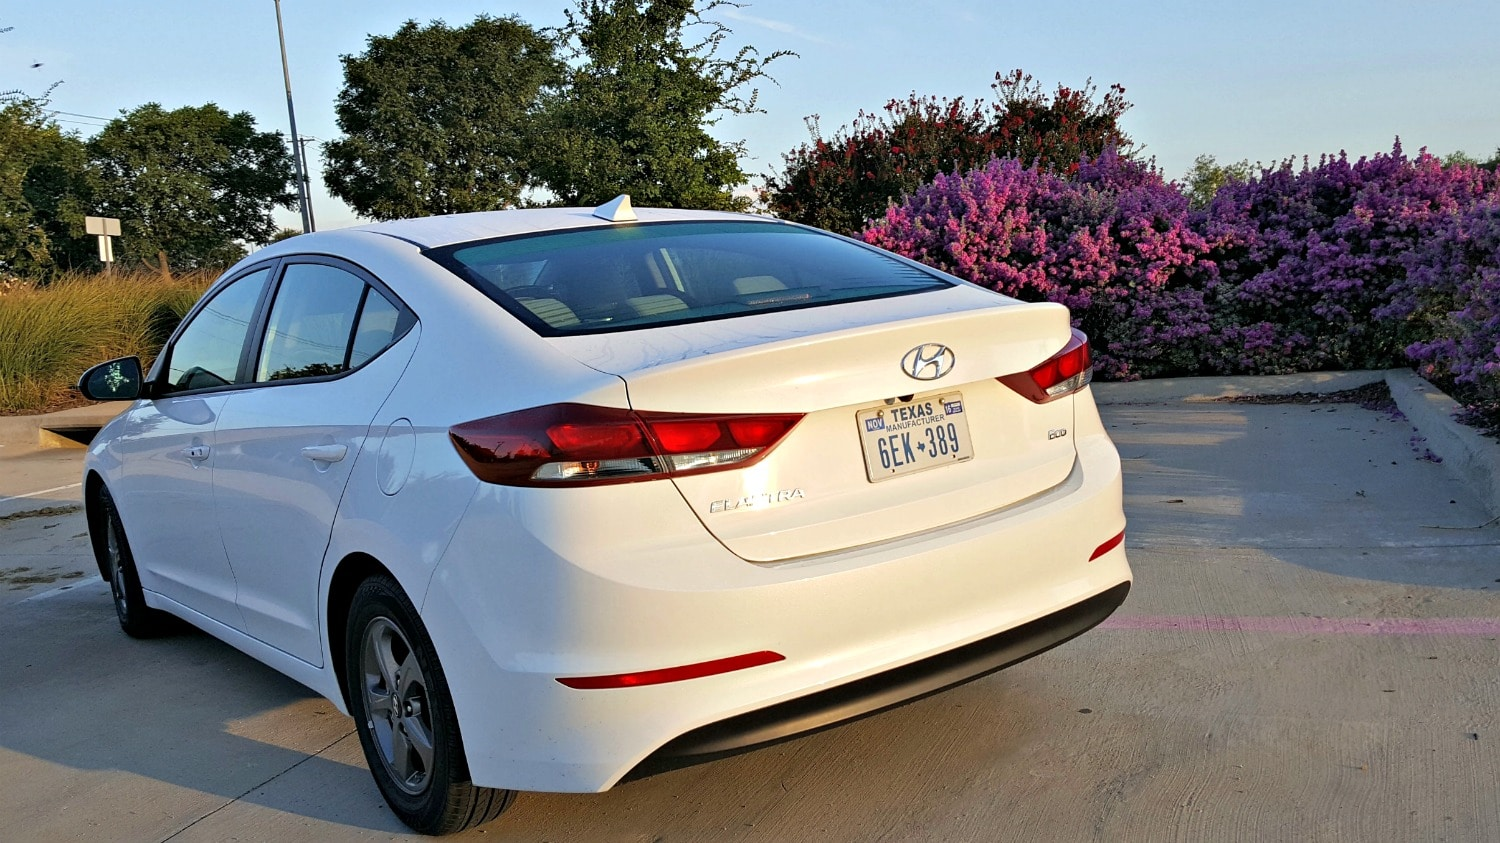 2017 Hyundai Elantra Rear View